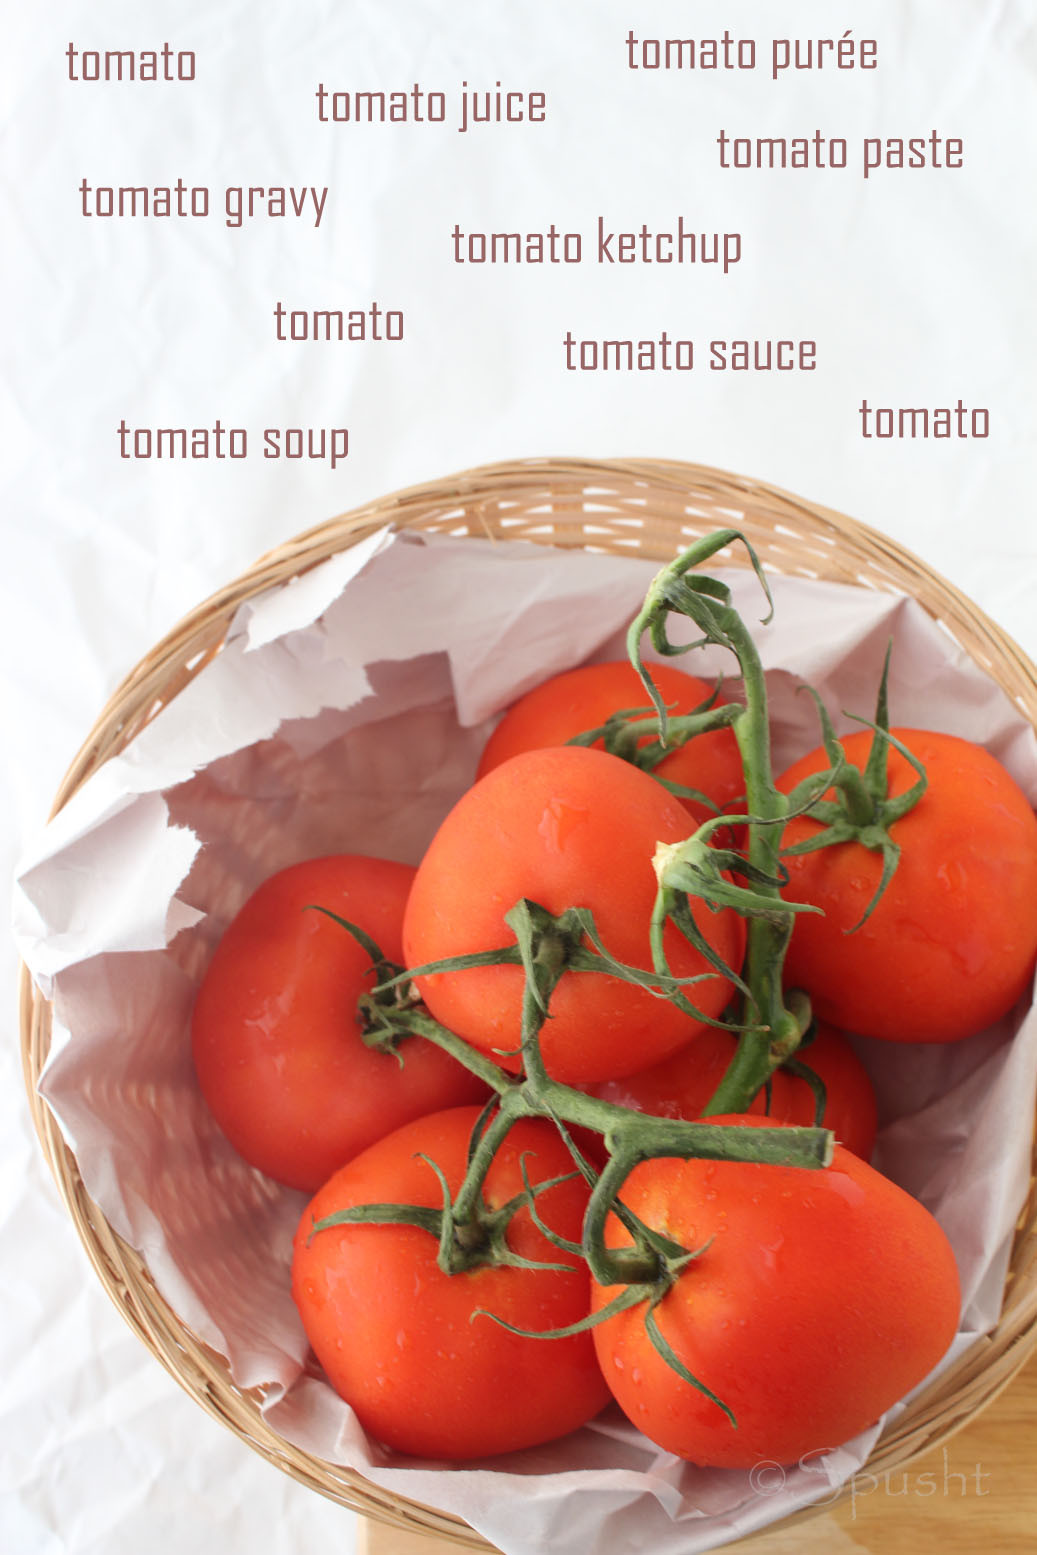 How To Make Tomato Soup From Tomato Sauce  Spusht Tomato Paste Purée Juice Gravy Soup Sauce